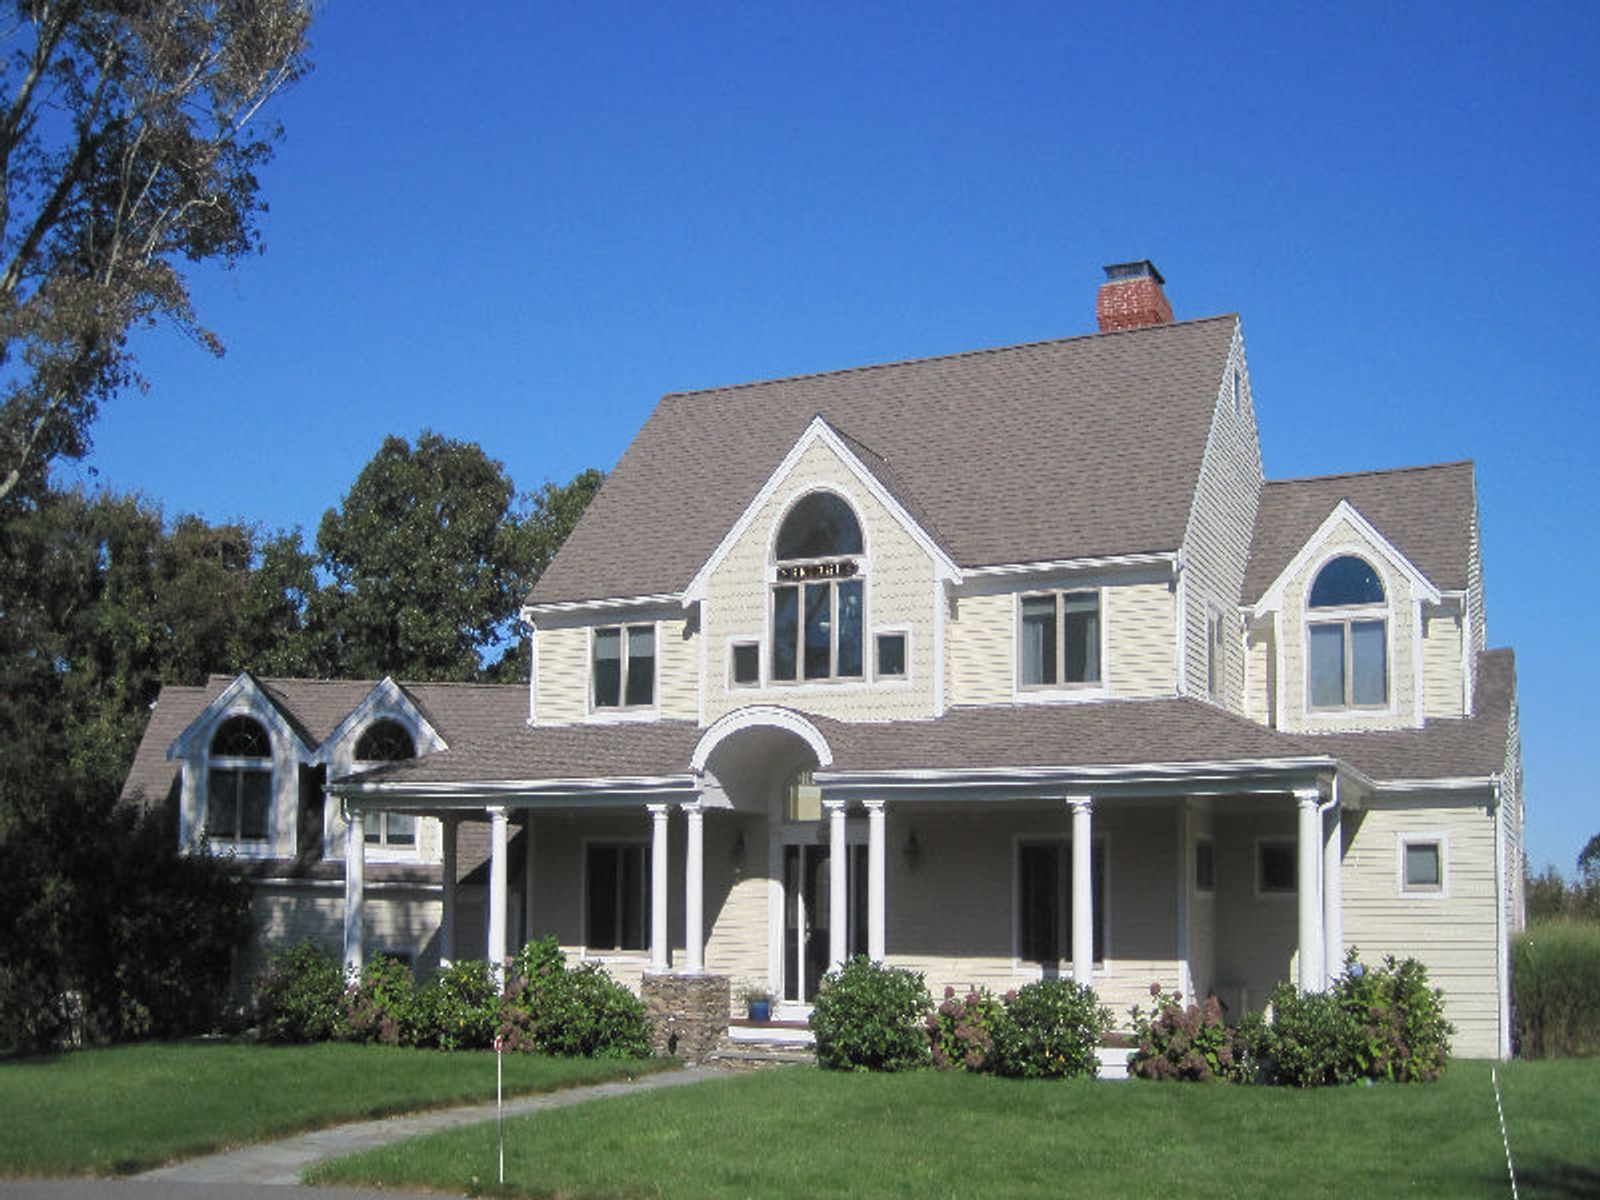 Estate Like Setting in Sandwich Village, Sandwich MA Single Family Home - Cape Cod Real Estate